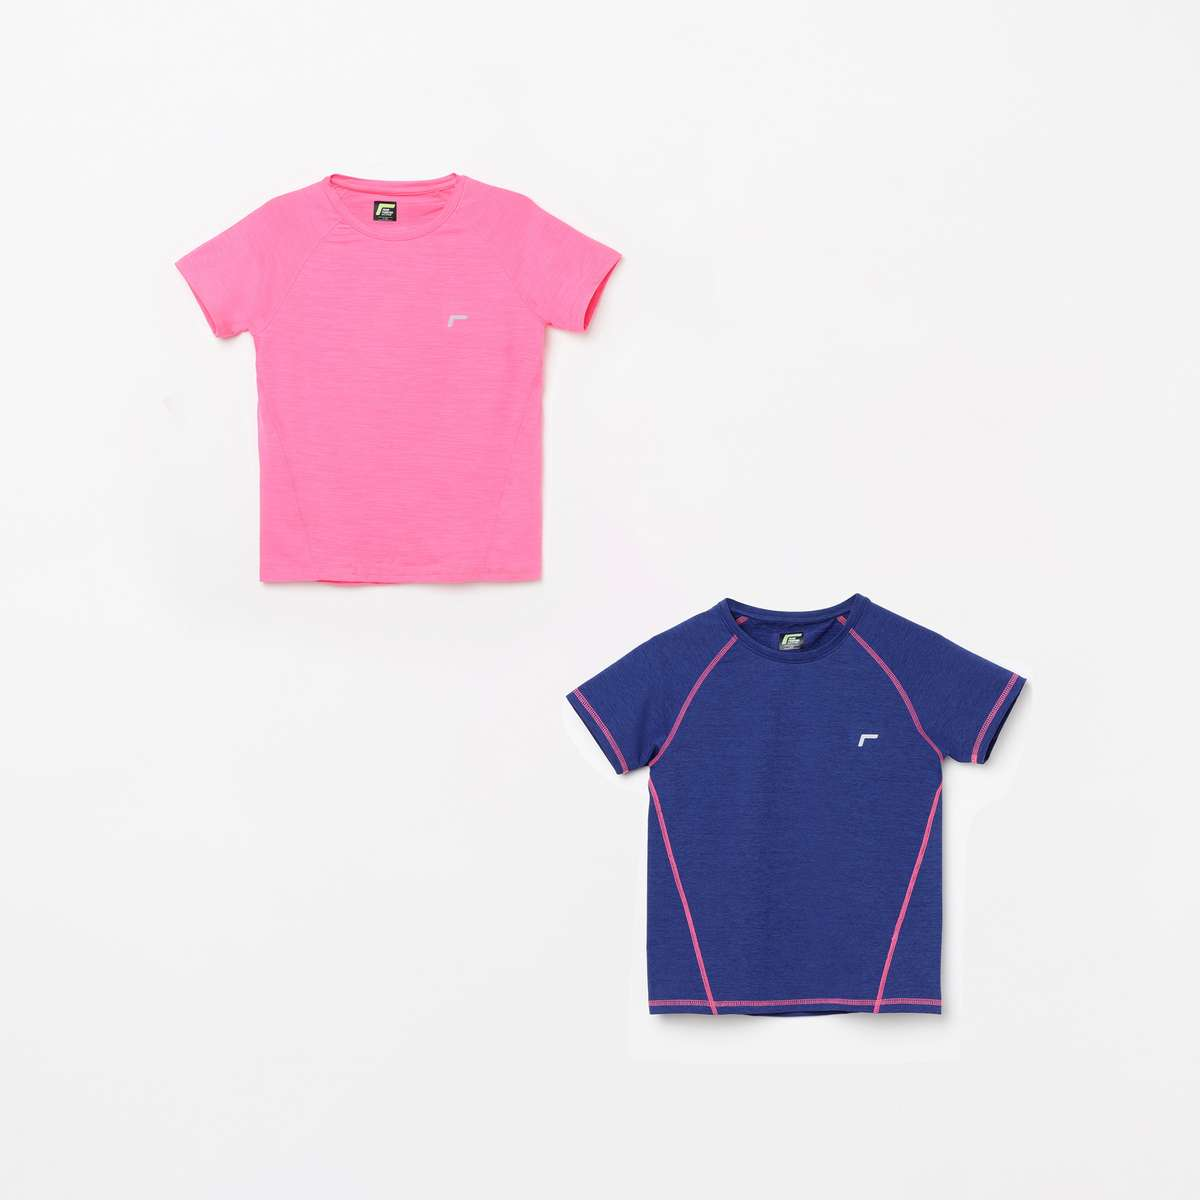 FAME ACTIVE Girls Textured Round Neck T-shirt - Pack of 2